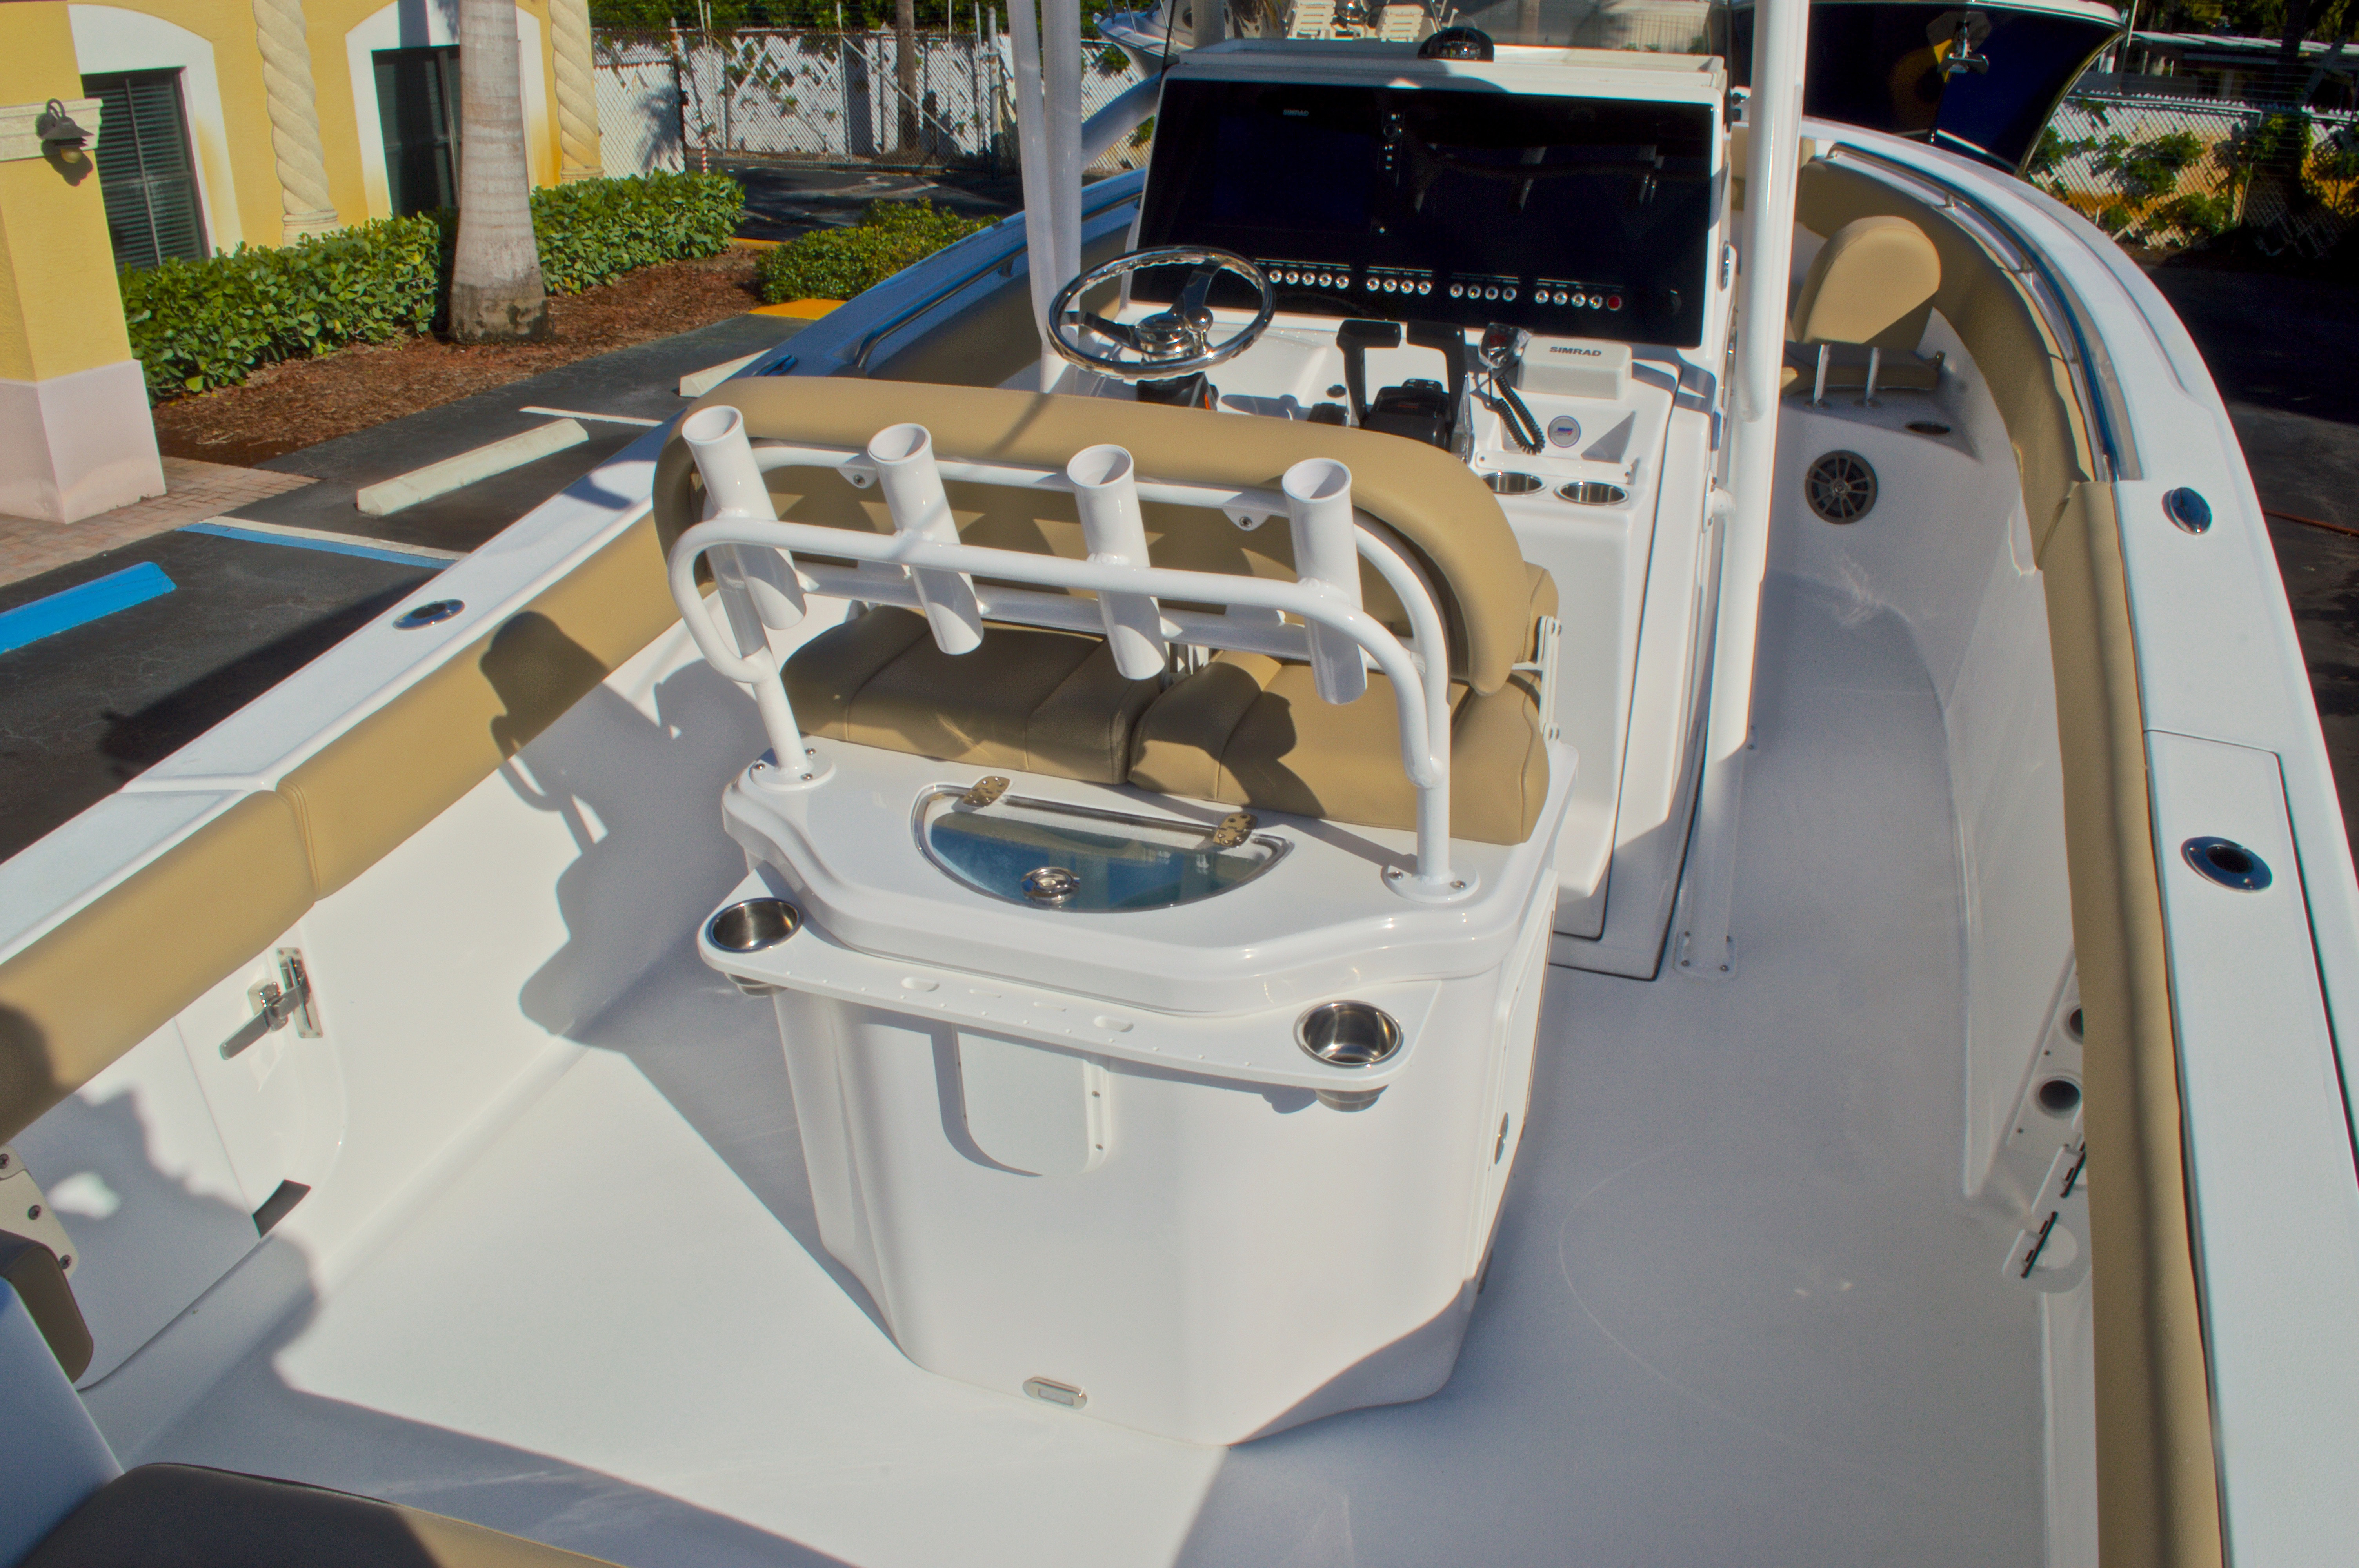 Thumbnail 8 for New 2016 Sportsman Heritage 251 Center Console boat for sale in West Palm Beach, FL